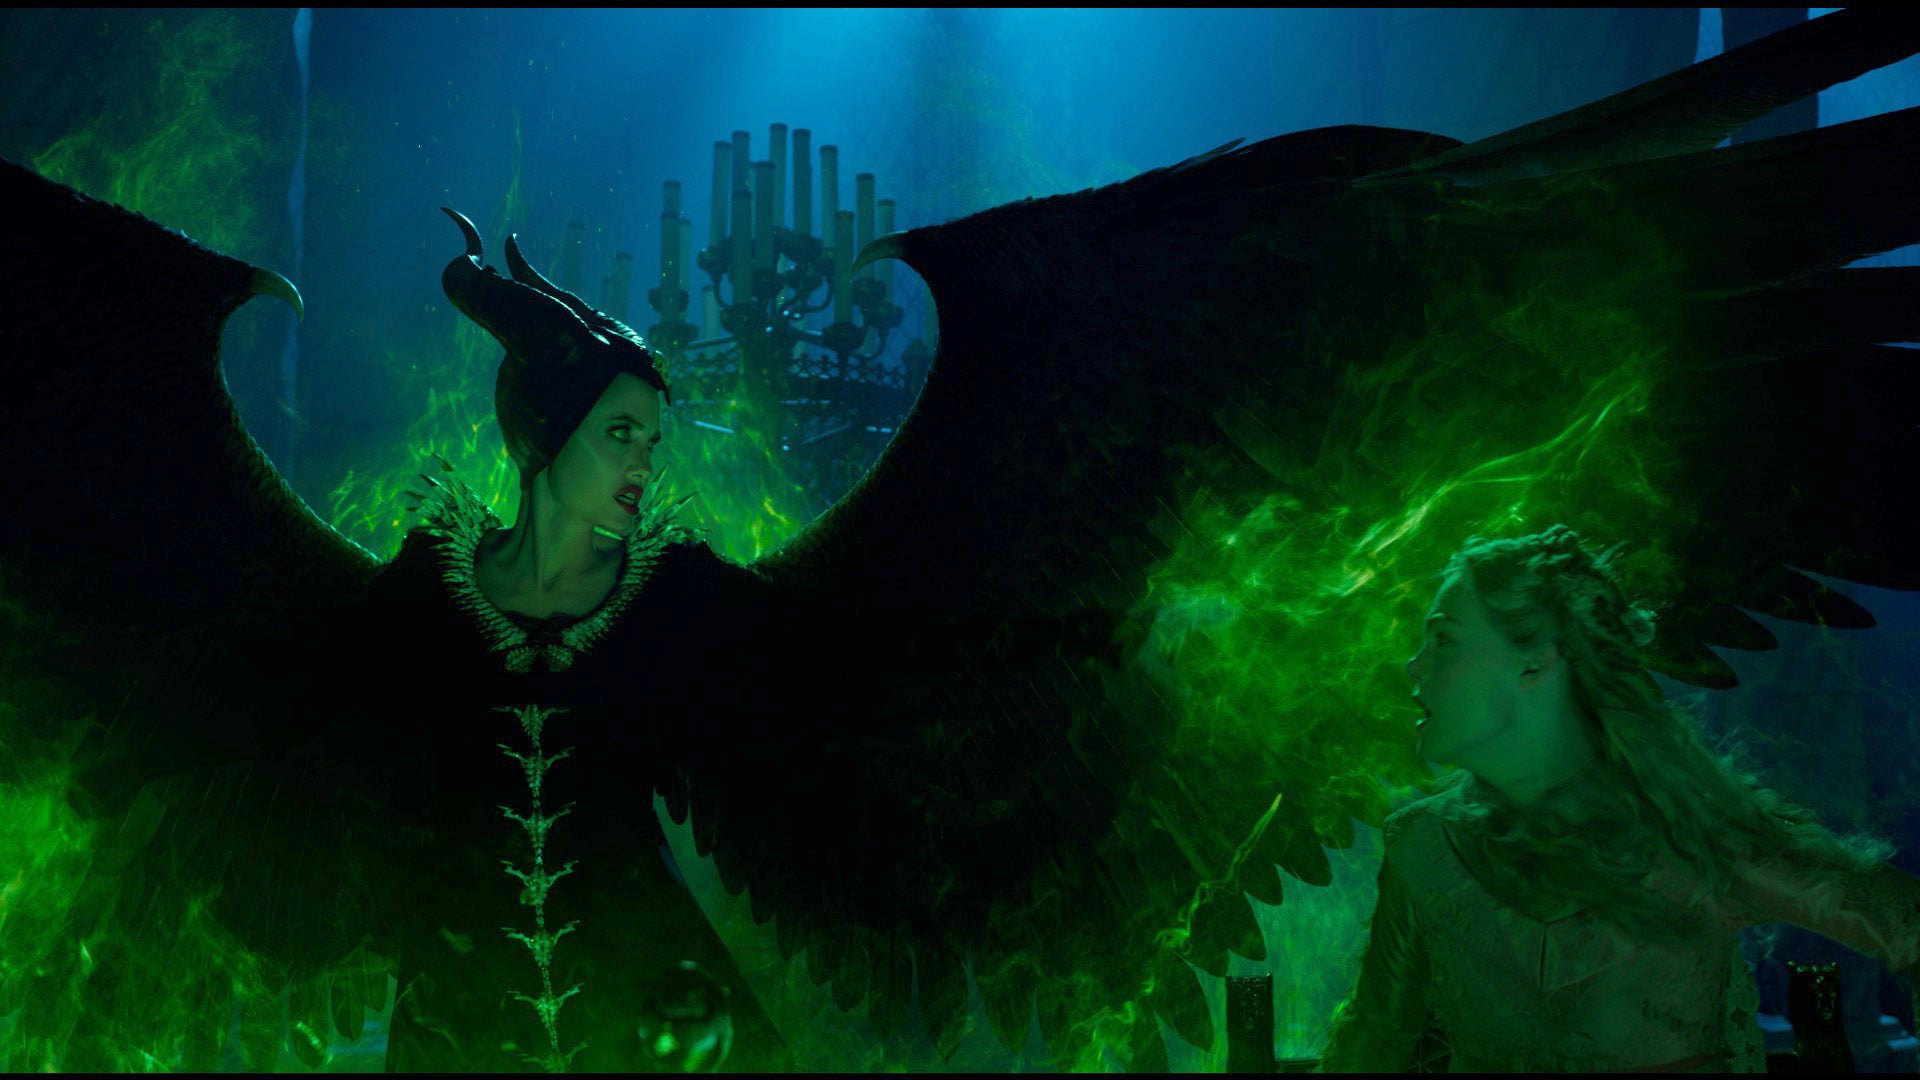 Angelina Jolie Is Back To Her Wicked Ways In The First Trailer For Maleficent: Mistress Of Evil